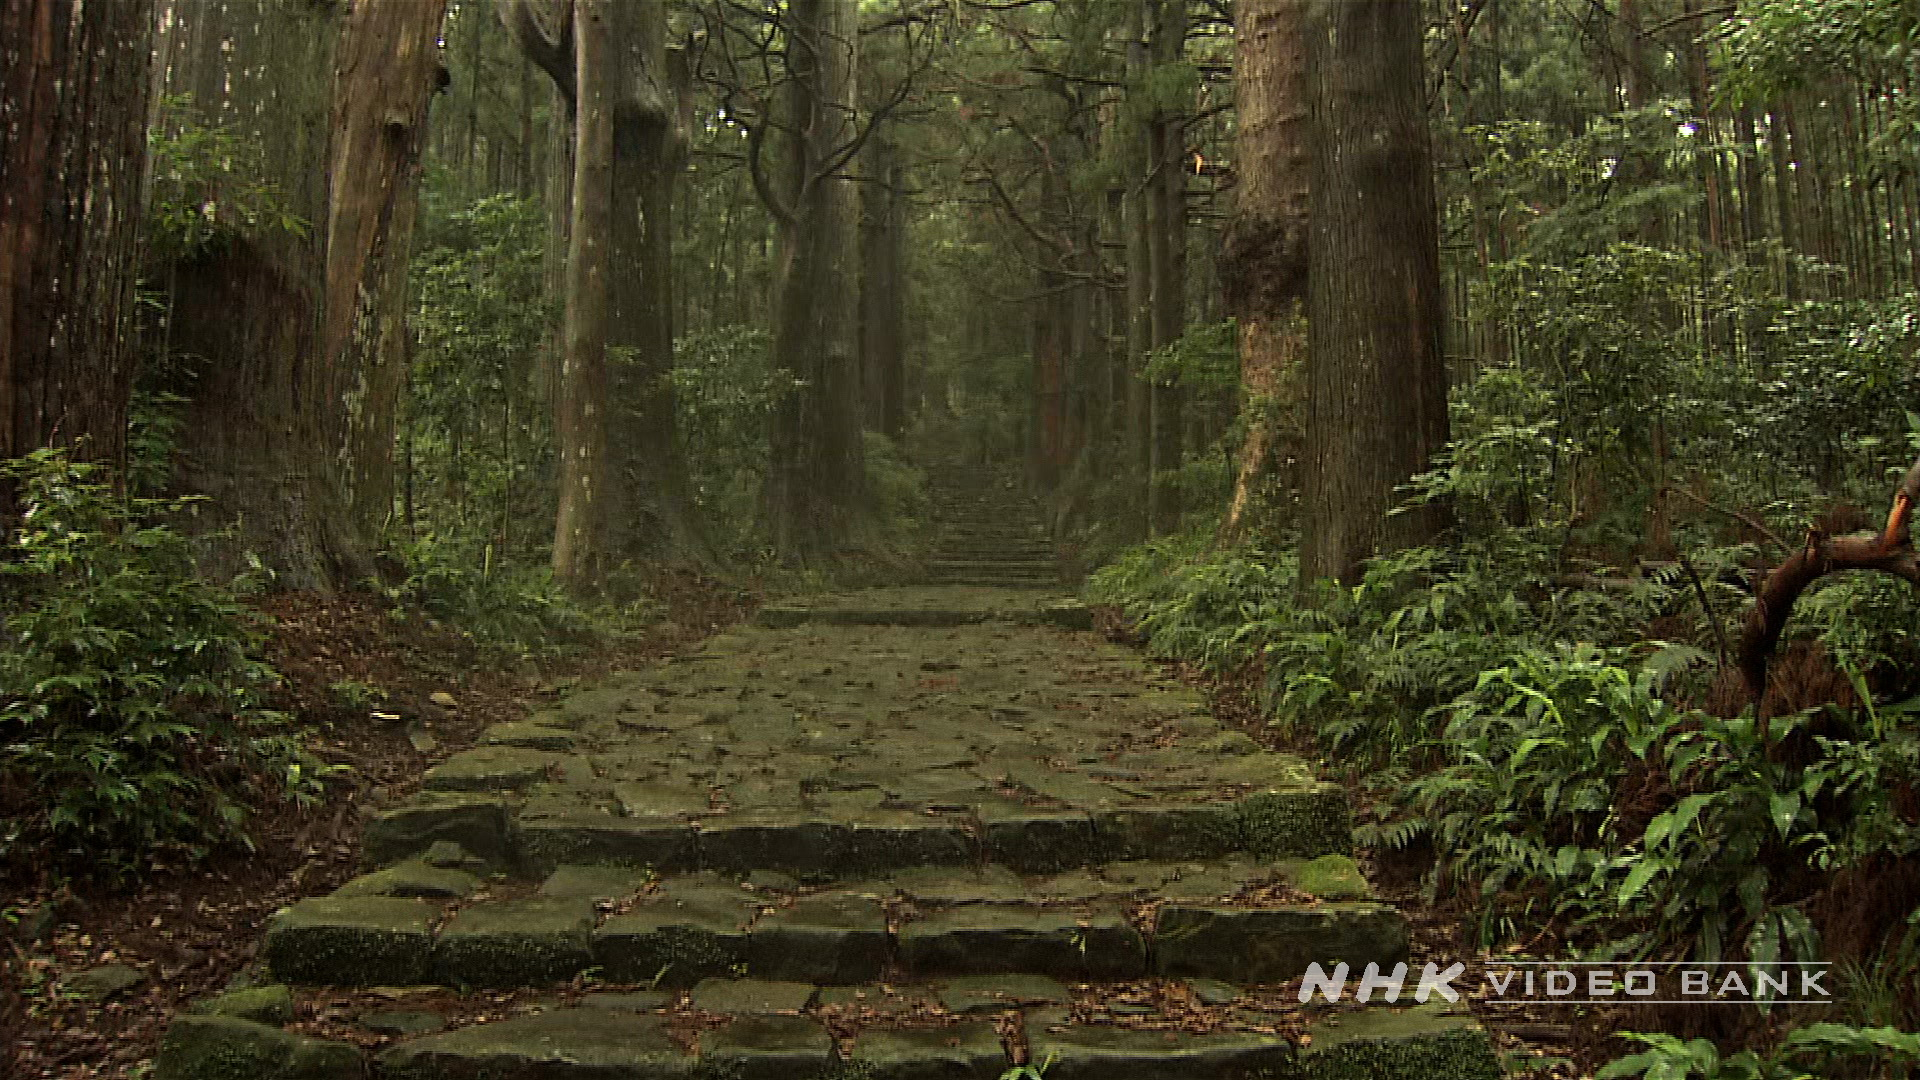 UNESCO World Heritage: Kumano Kodo Pilgrimage Routes